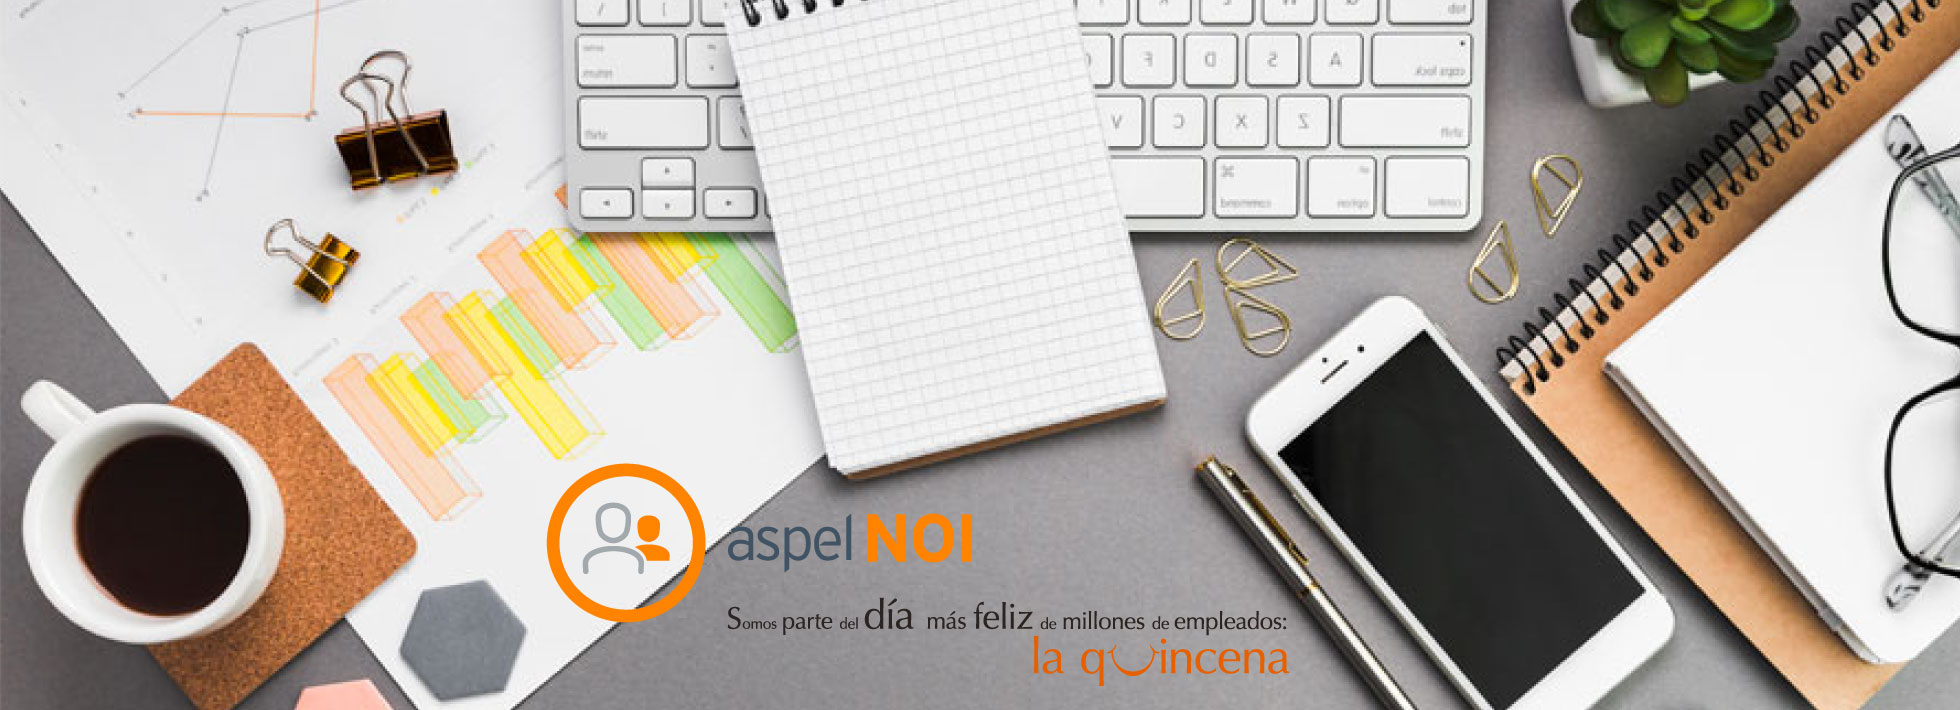 Reinstalable 13 aspel noi 9